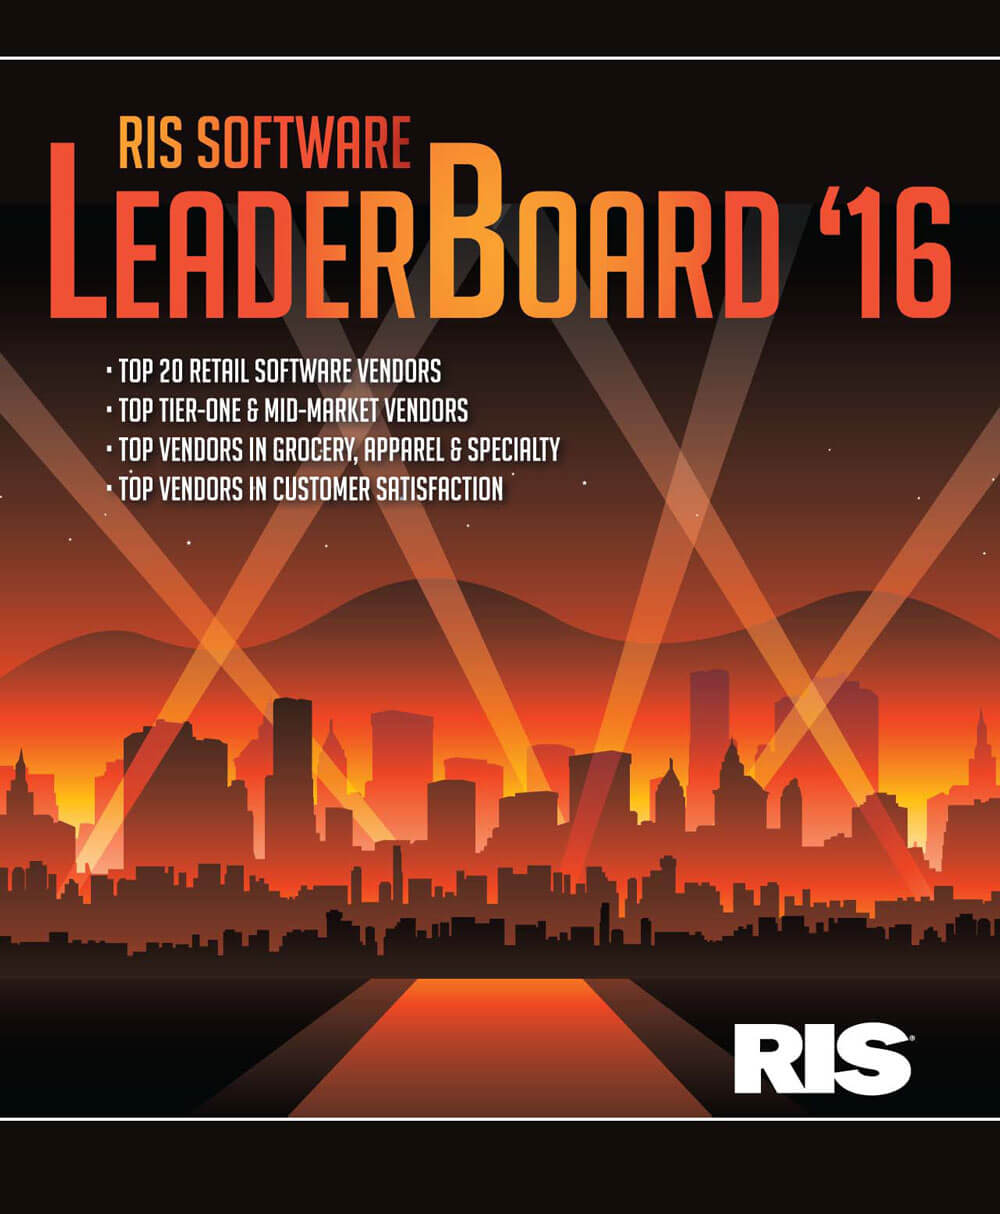 See the full RIS Software Leaderboard '16 Report here